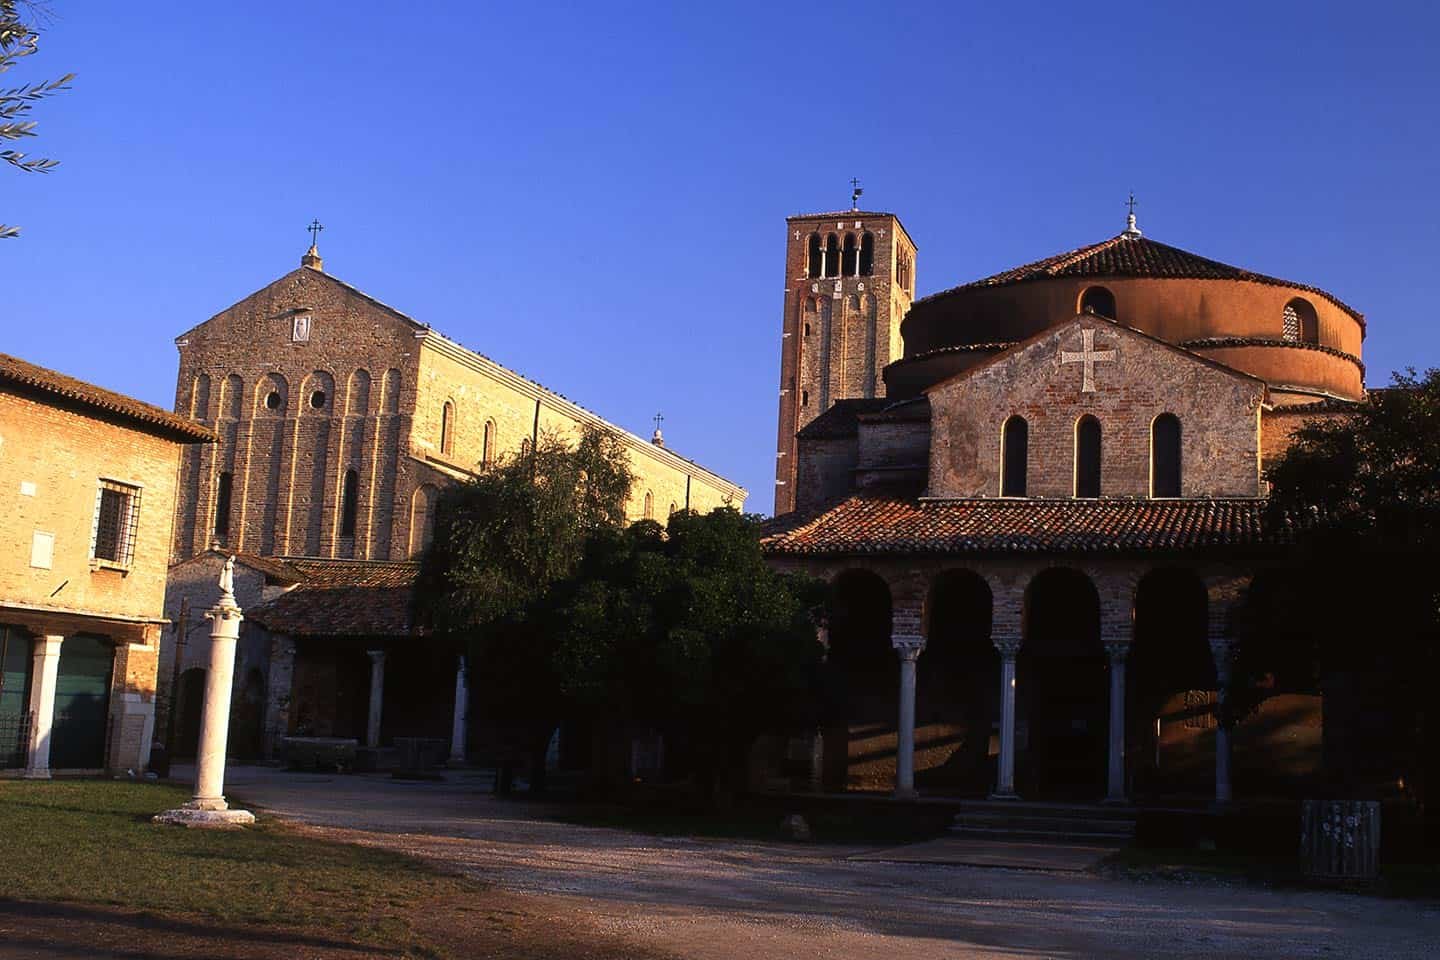 Image of the cathedral and Santa Fosca church on the island of Torcello, Venice